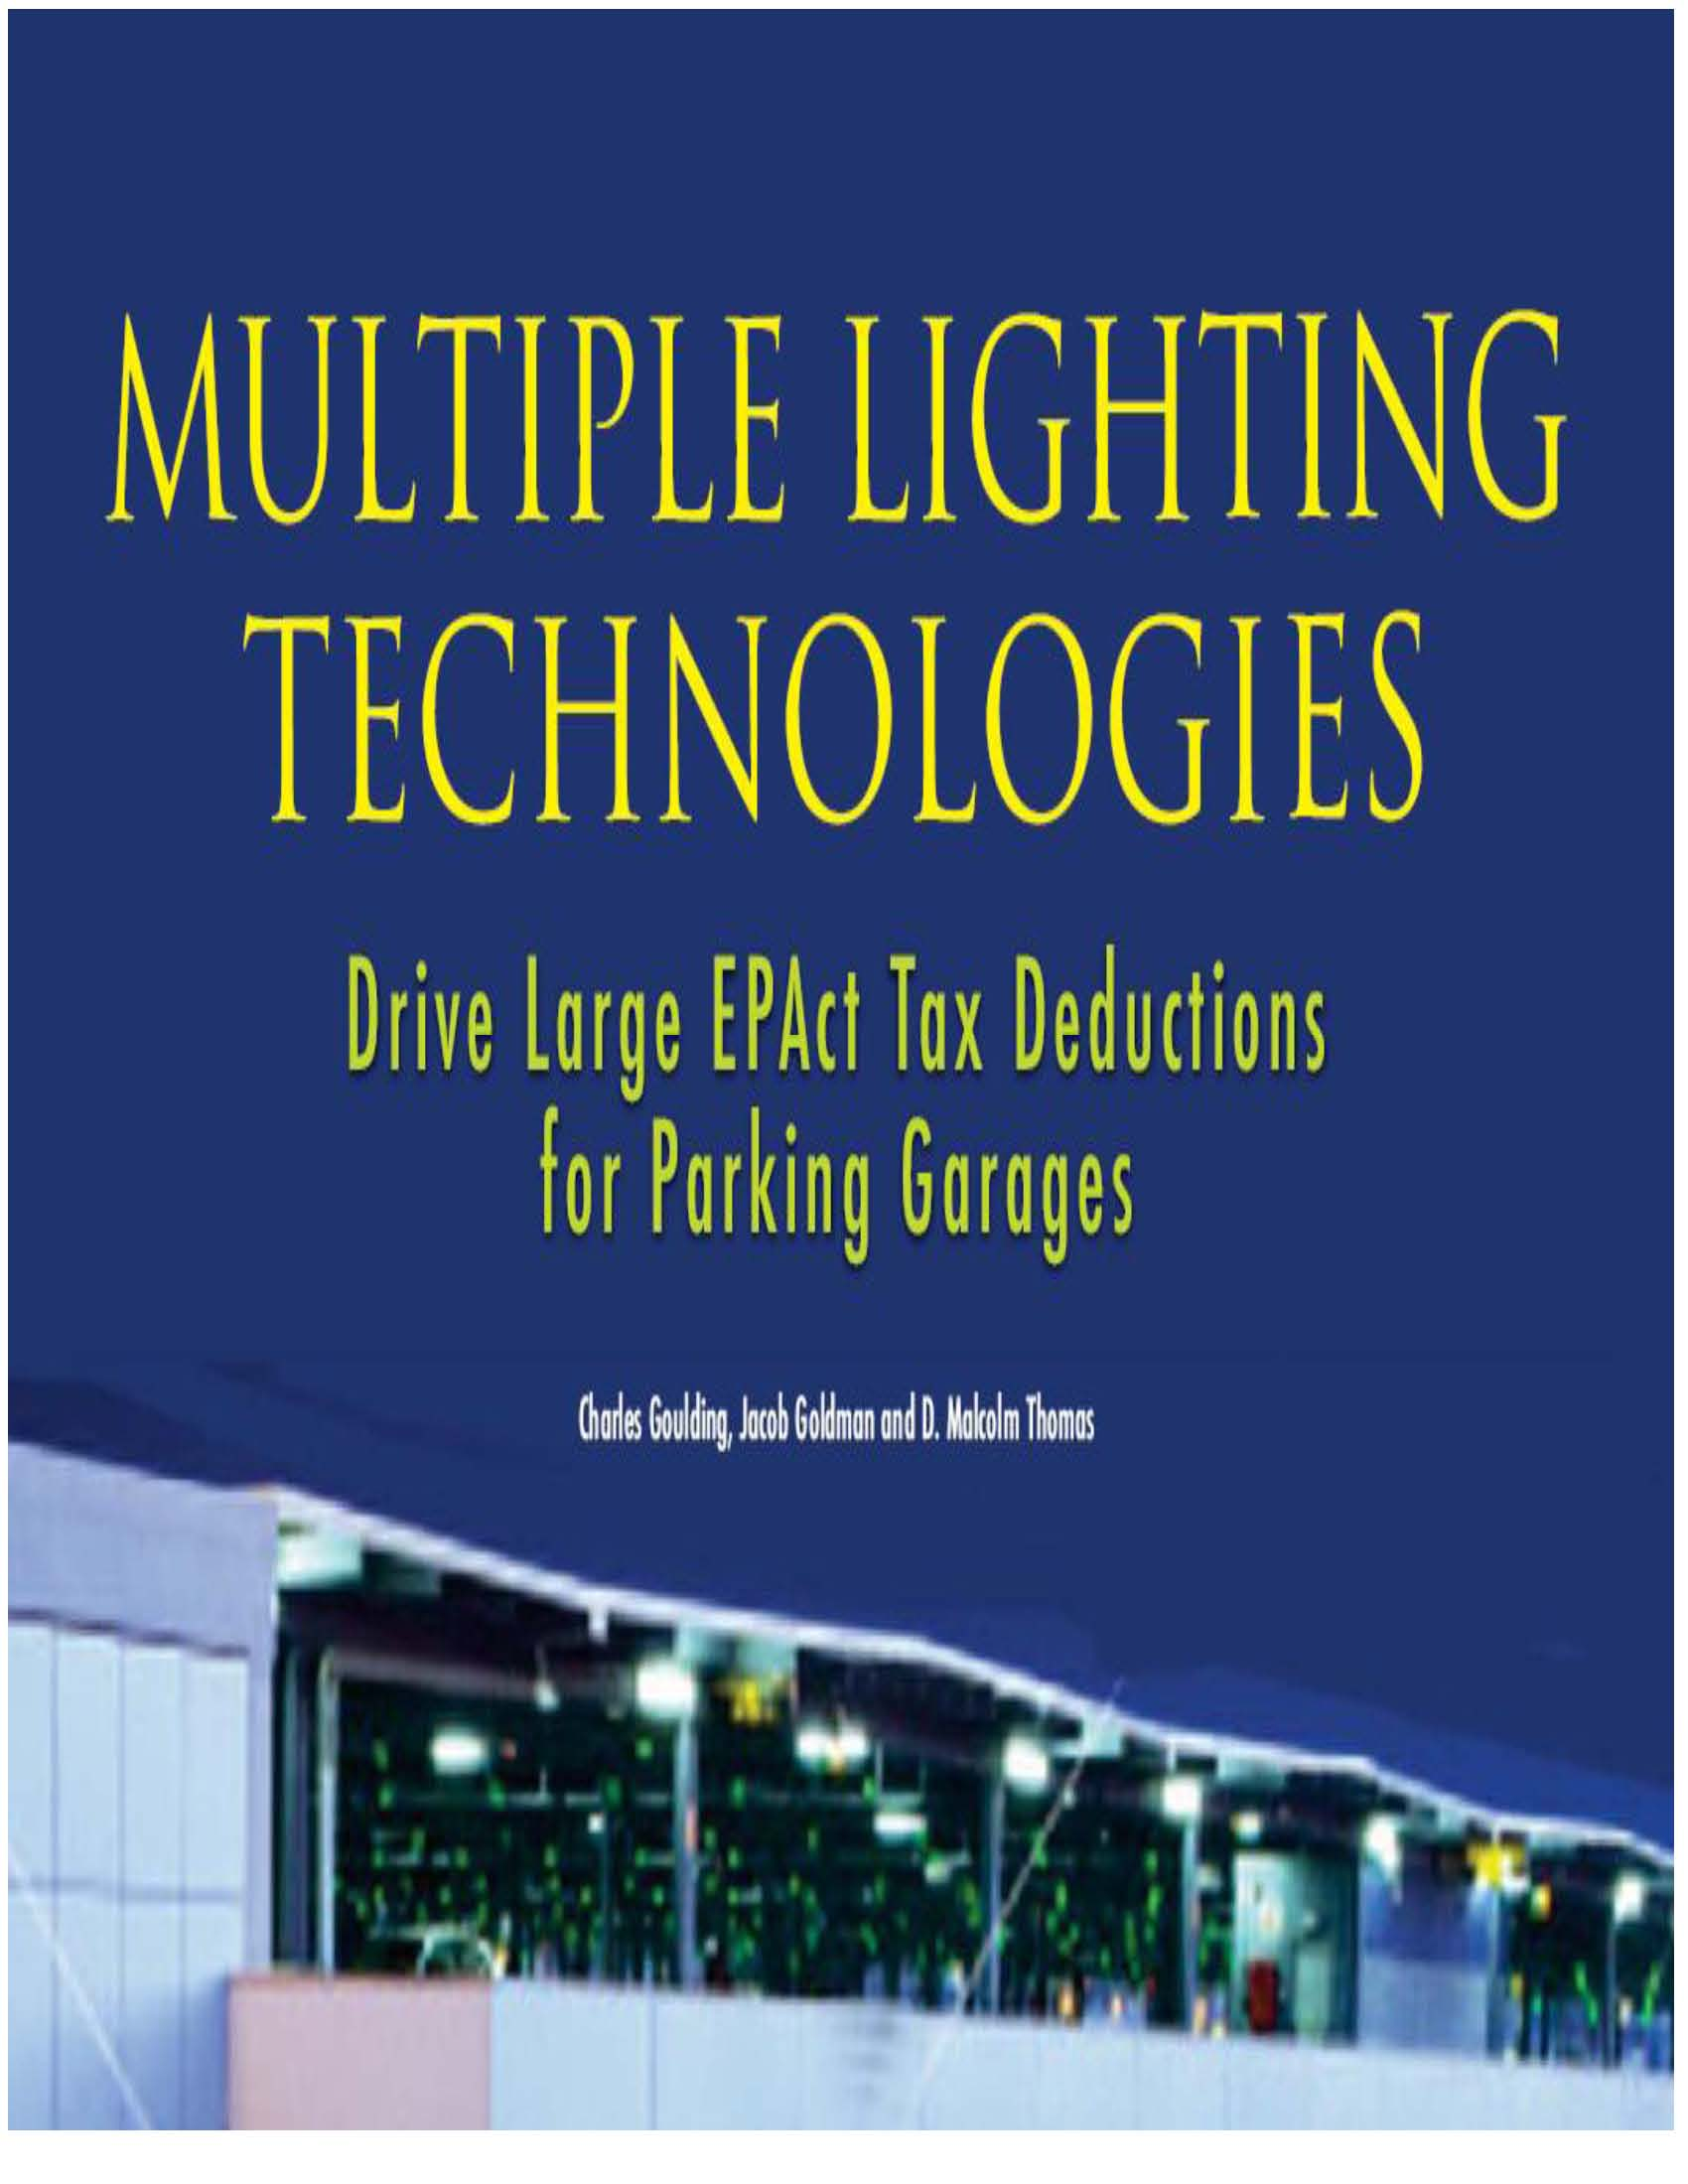 Multiple Lighting Technologies Drive Large EPAct Tax Deductions for Parking Garages